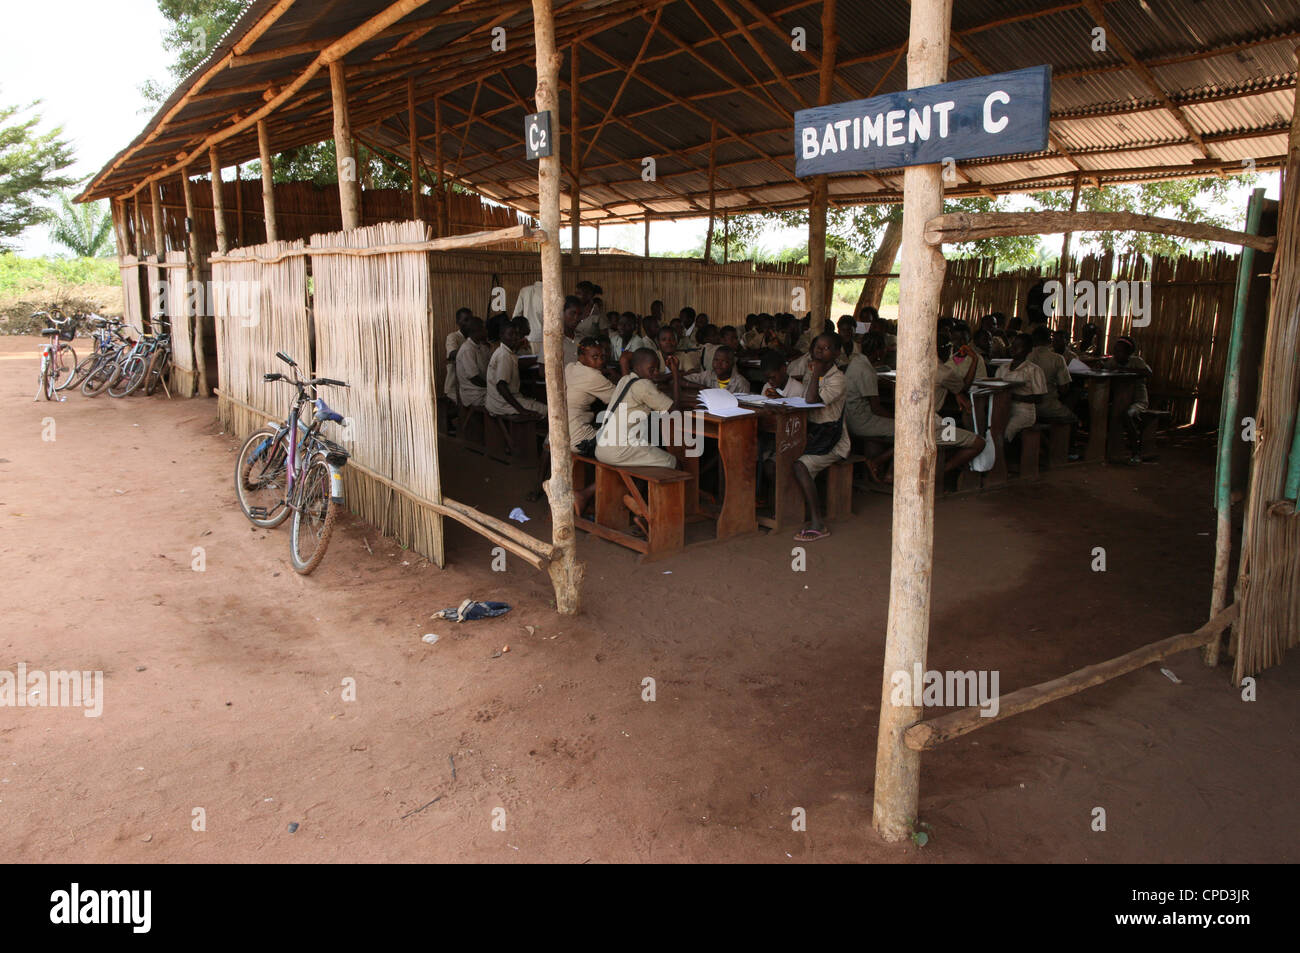 Secondary school in Africa, Hevie, Benin, West Africa, Africa - Stock Image